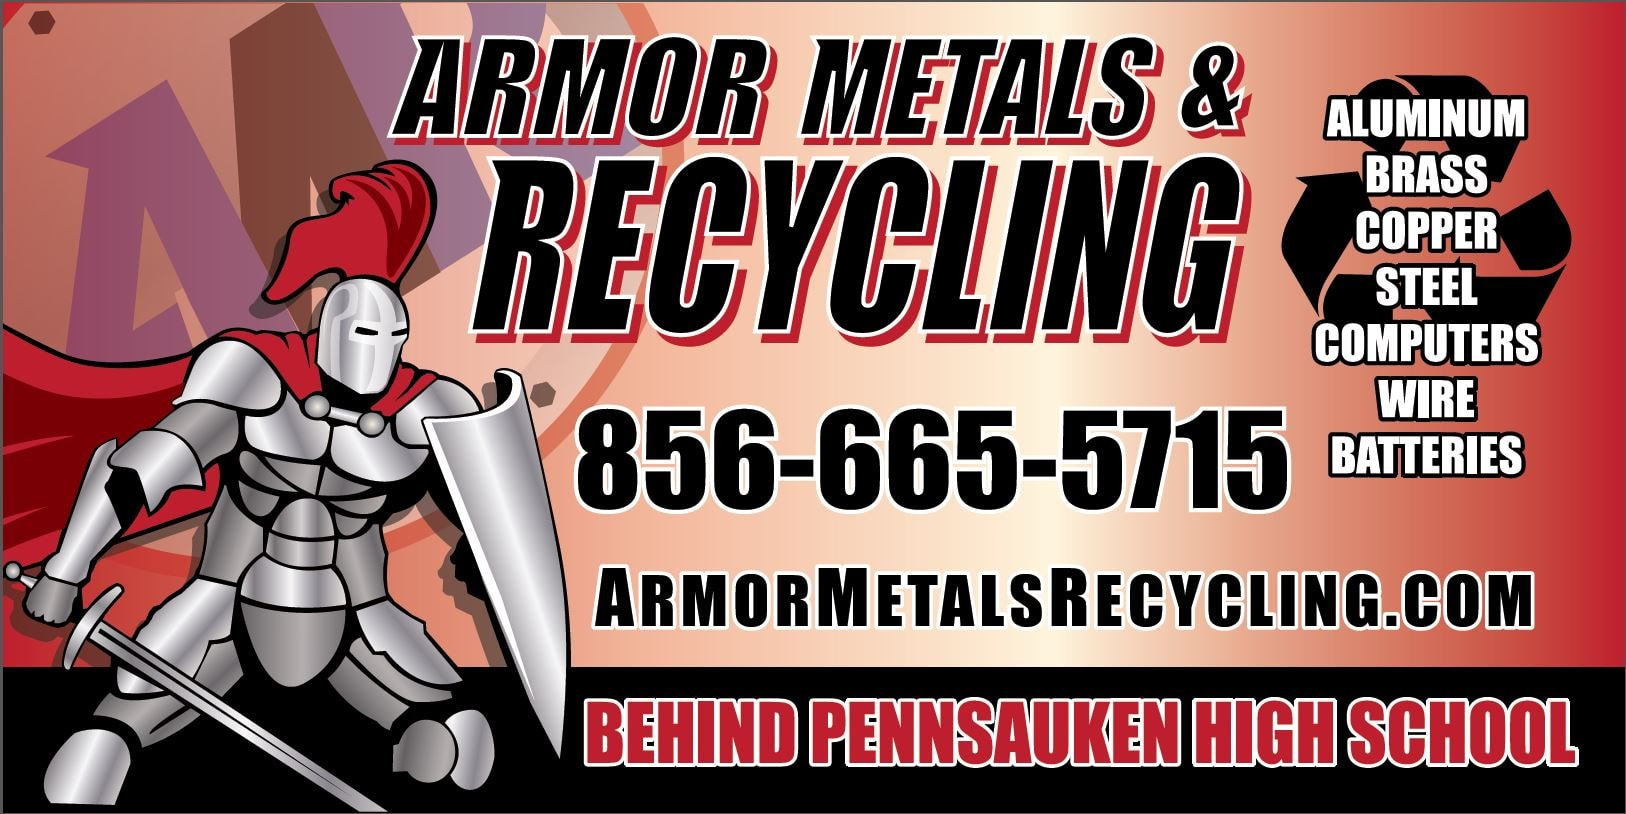 Armor Metals and Recycling logo w info